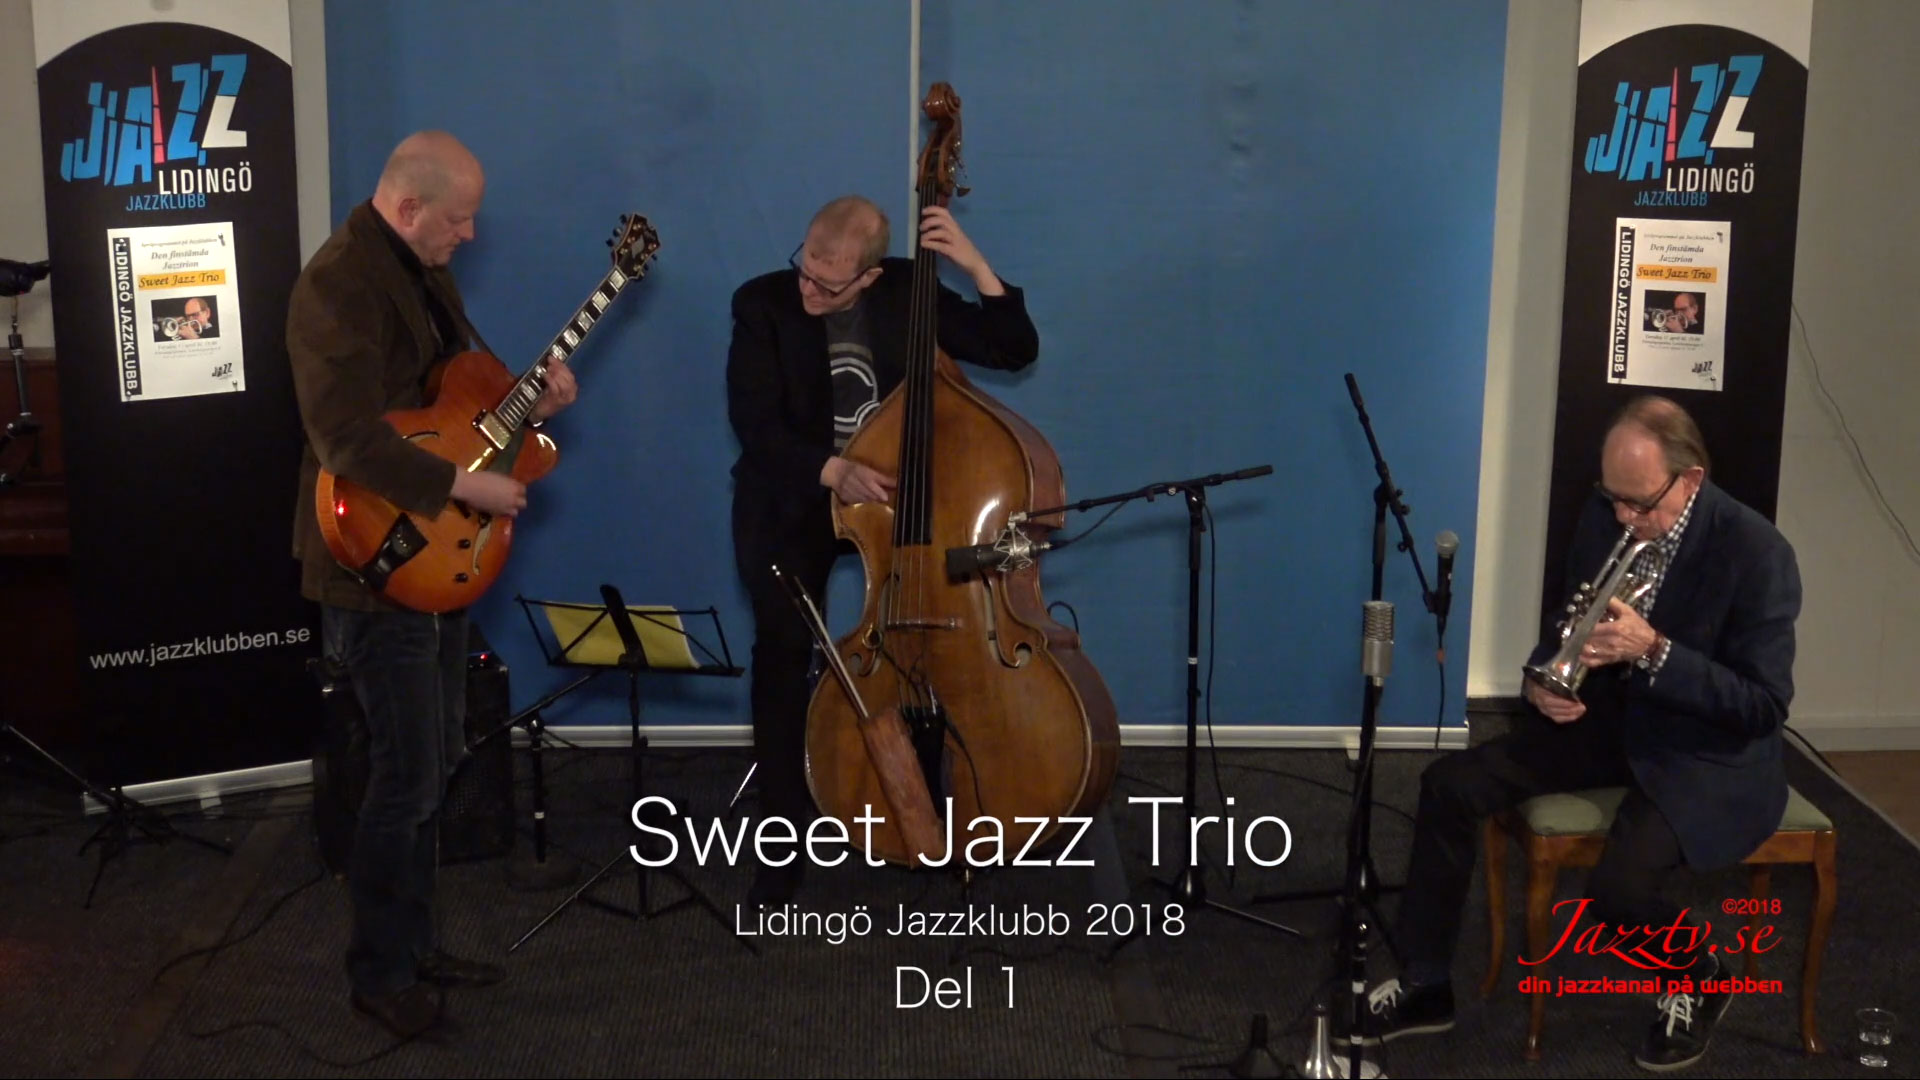 Sweet Jazz Trio